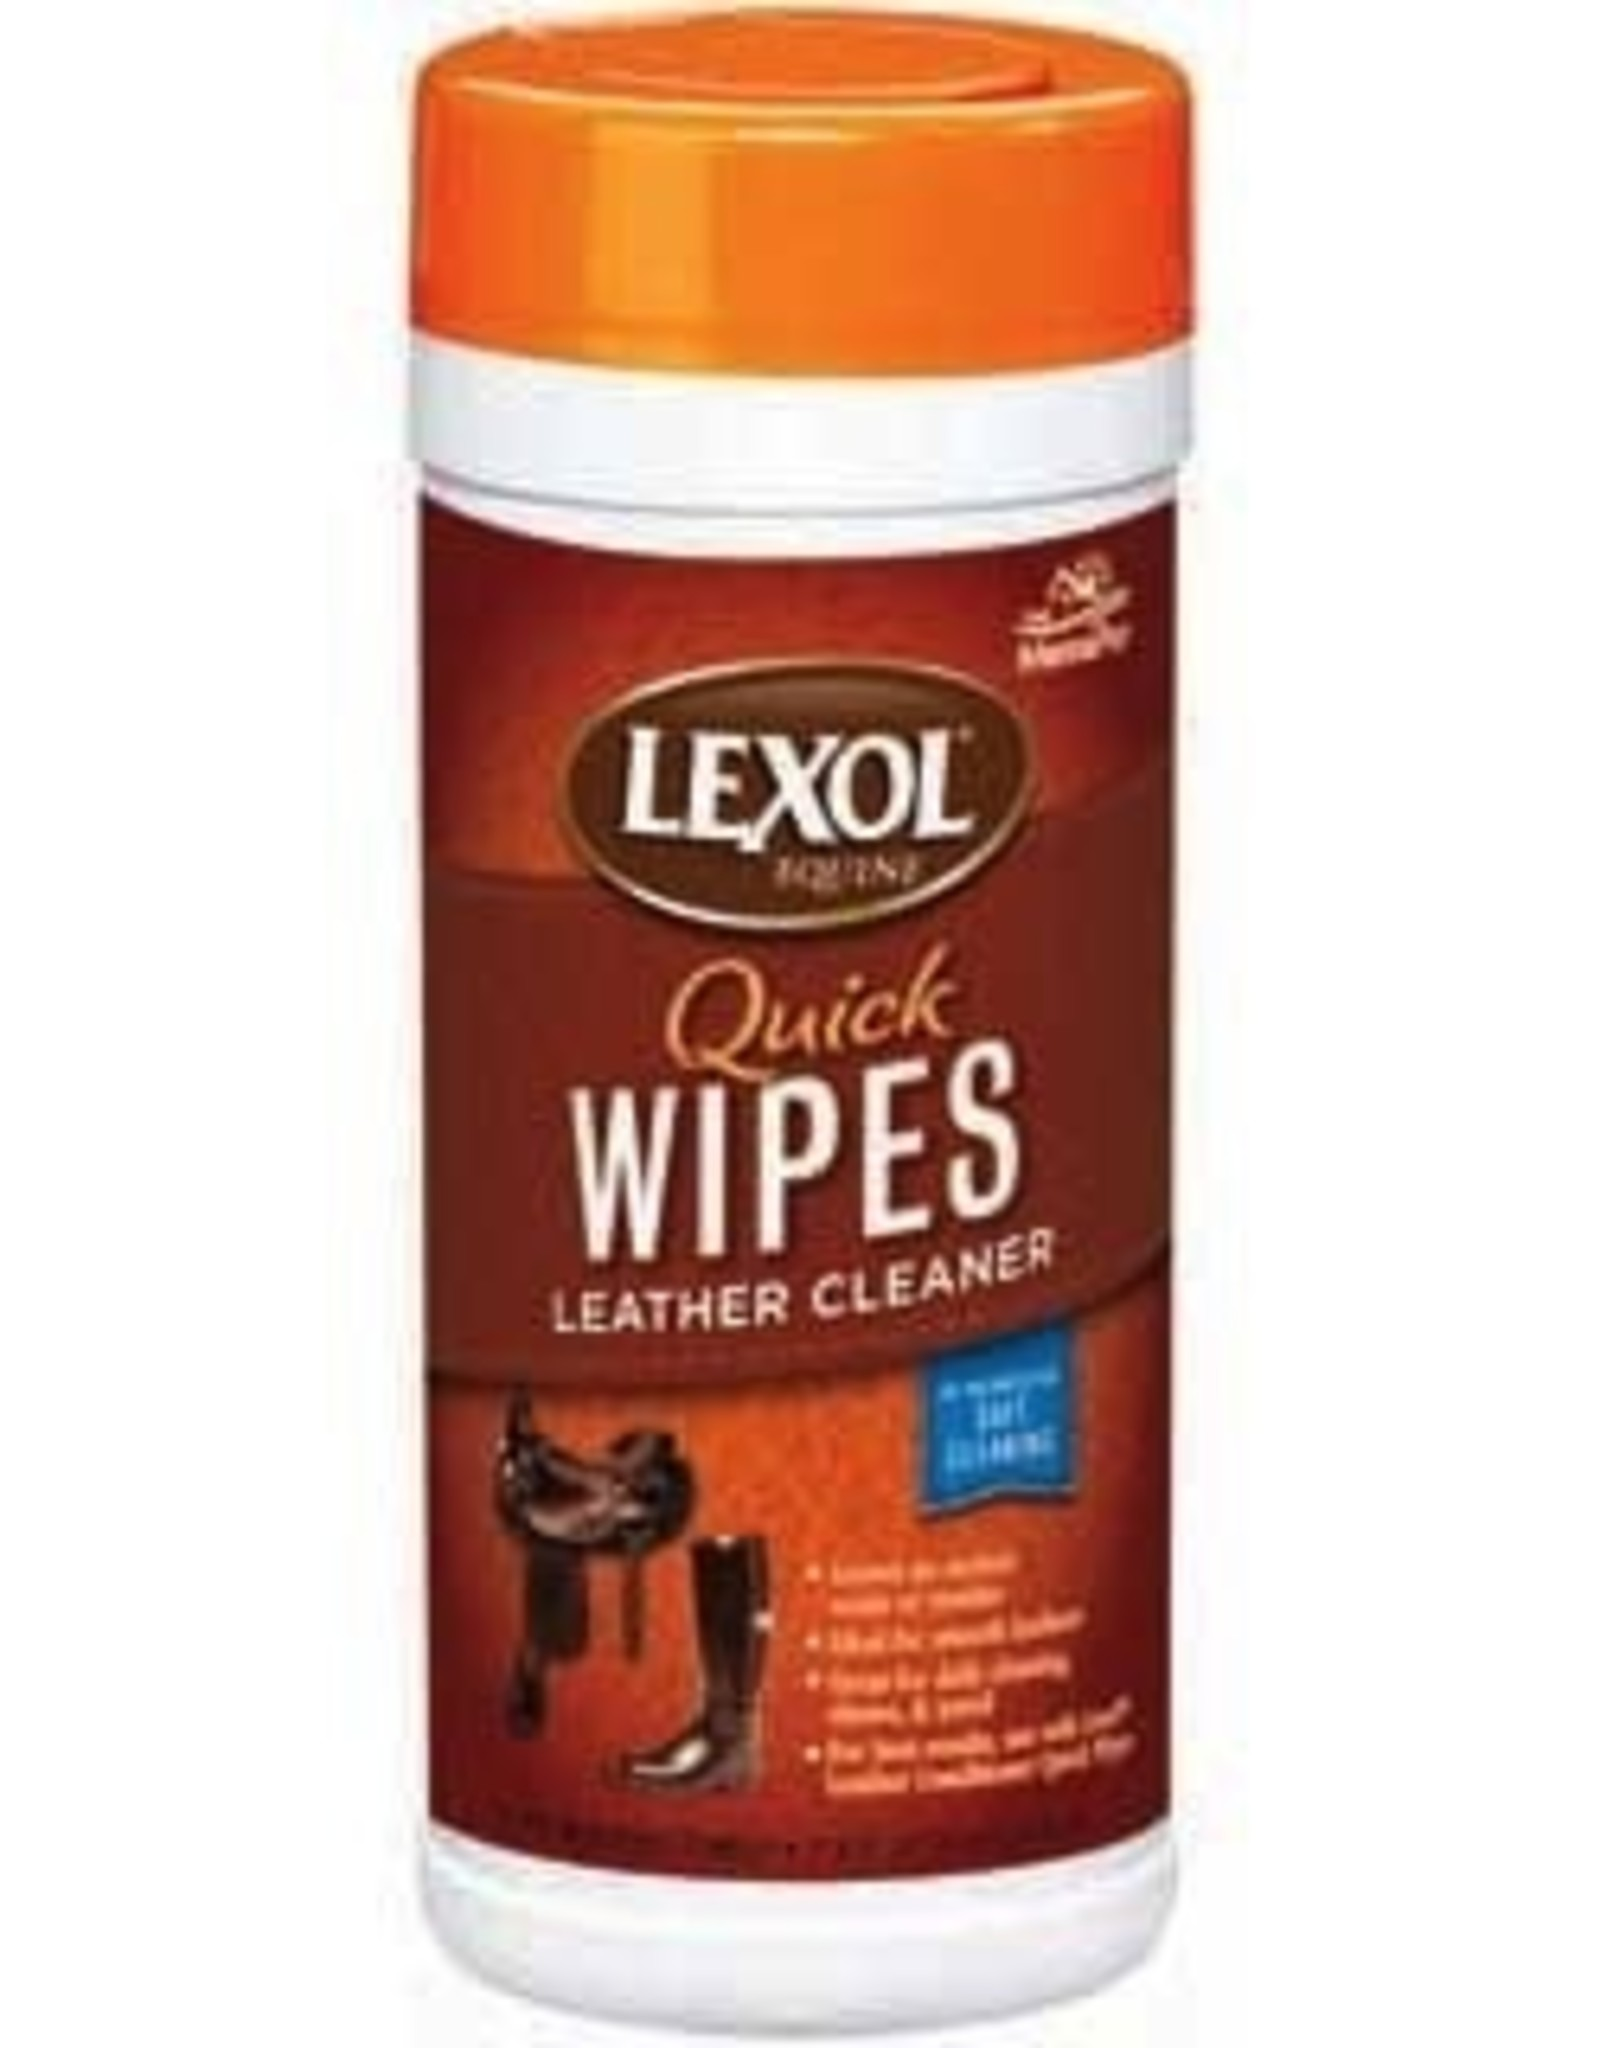 Lexol Leather Cleaner Quickwipes